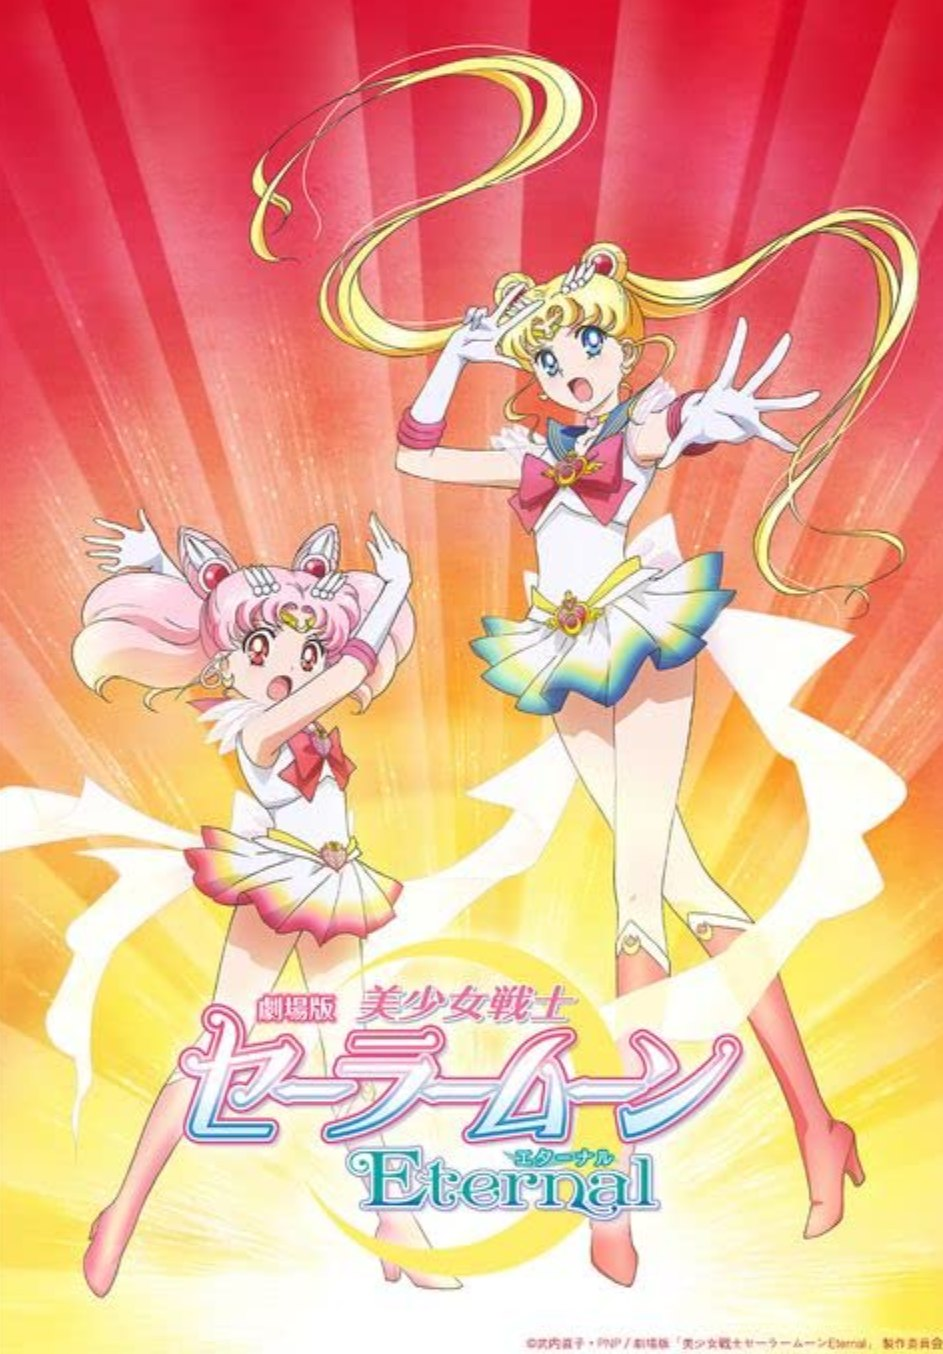 New Anime Movies 2021 13 - sailor moon eternal part 2